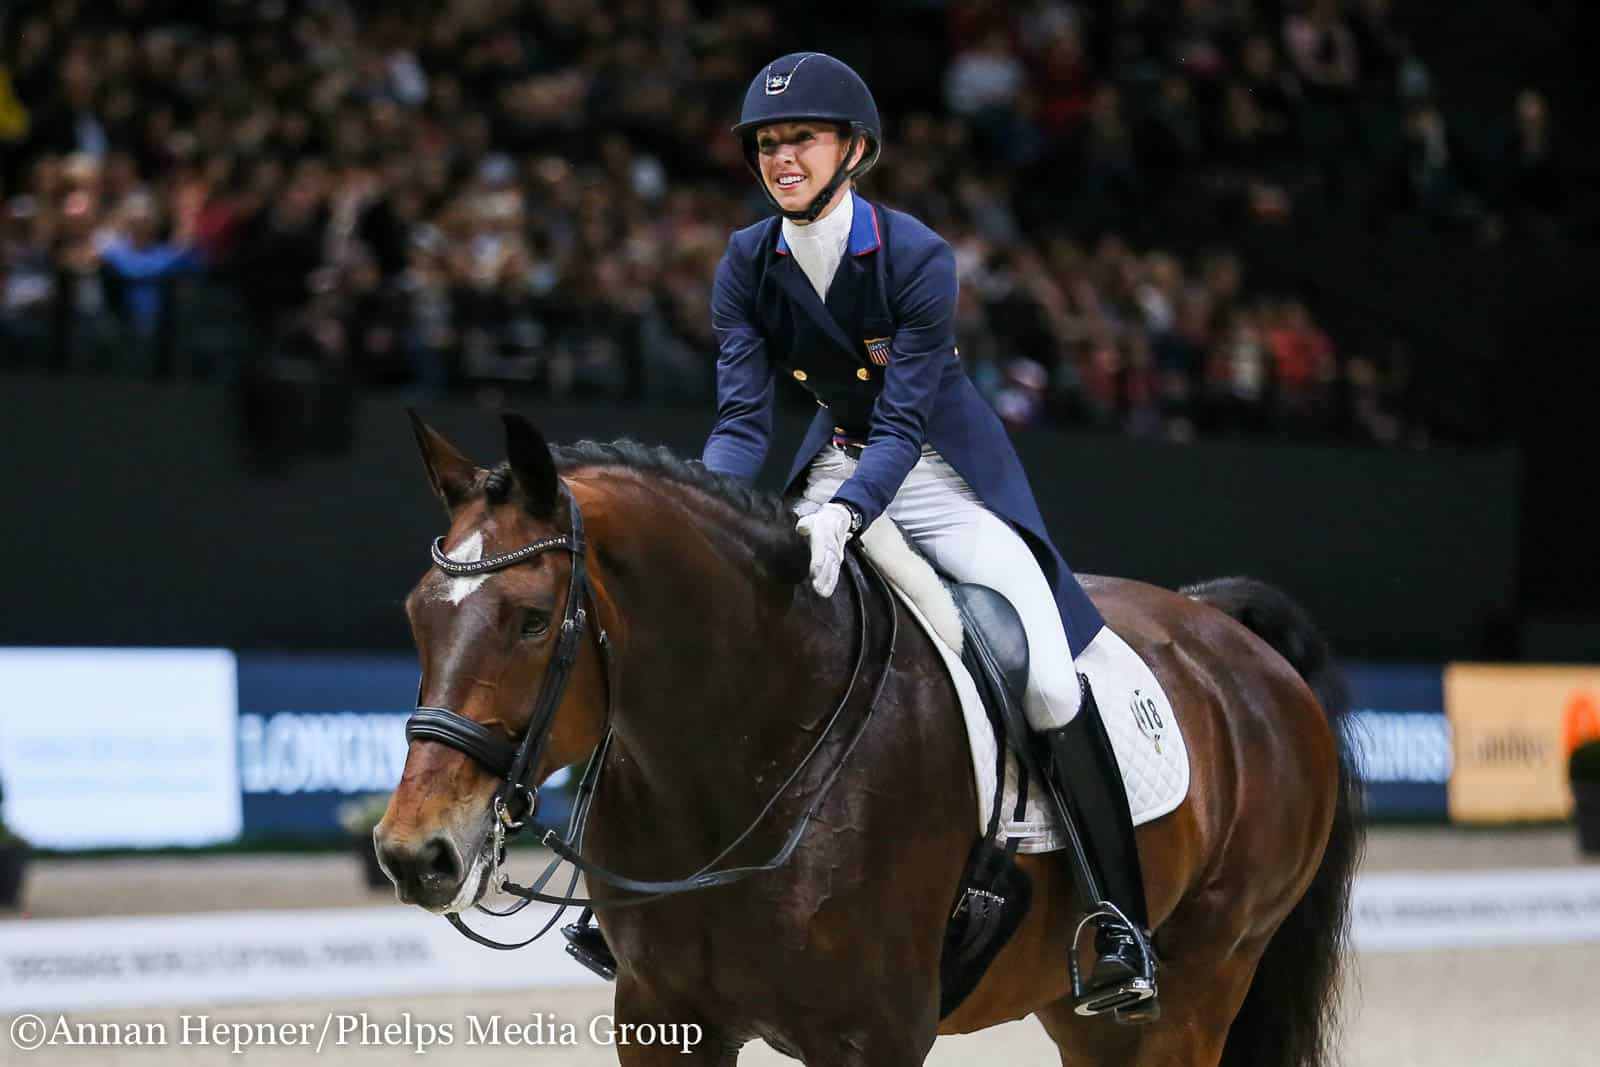 Laura Graves And Verdades Earn Personal Best In Grand Prix